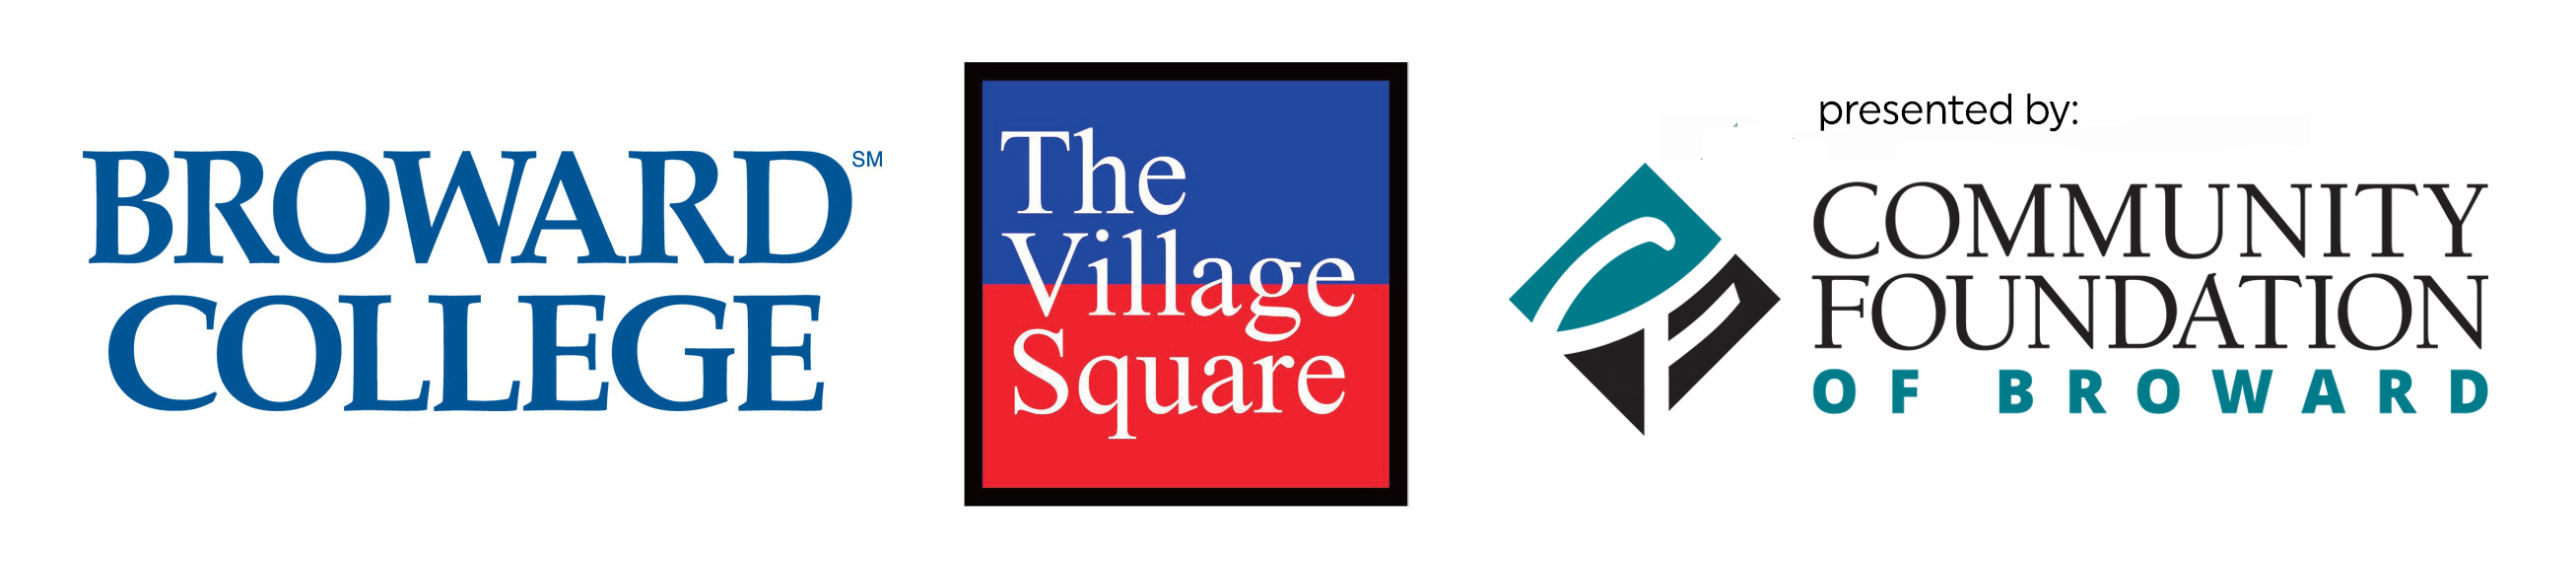 The Village Square - Broward